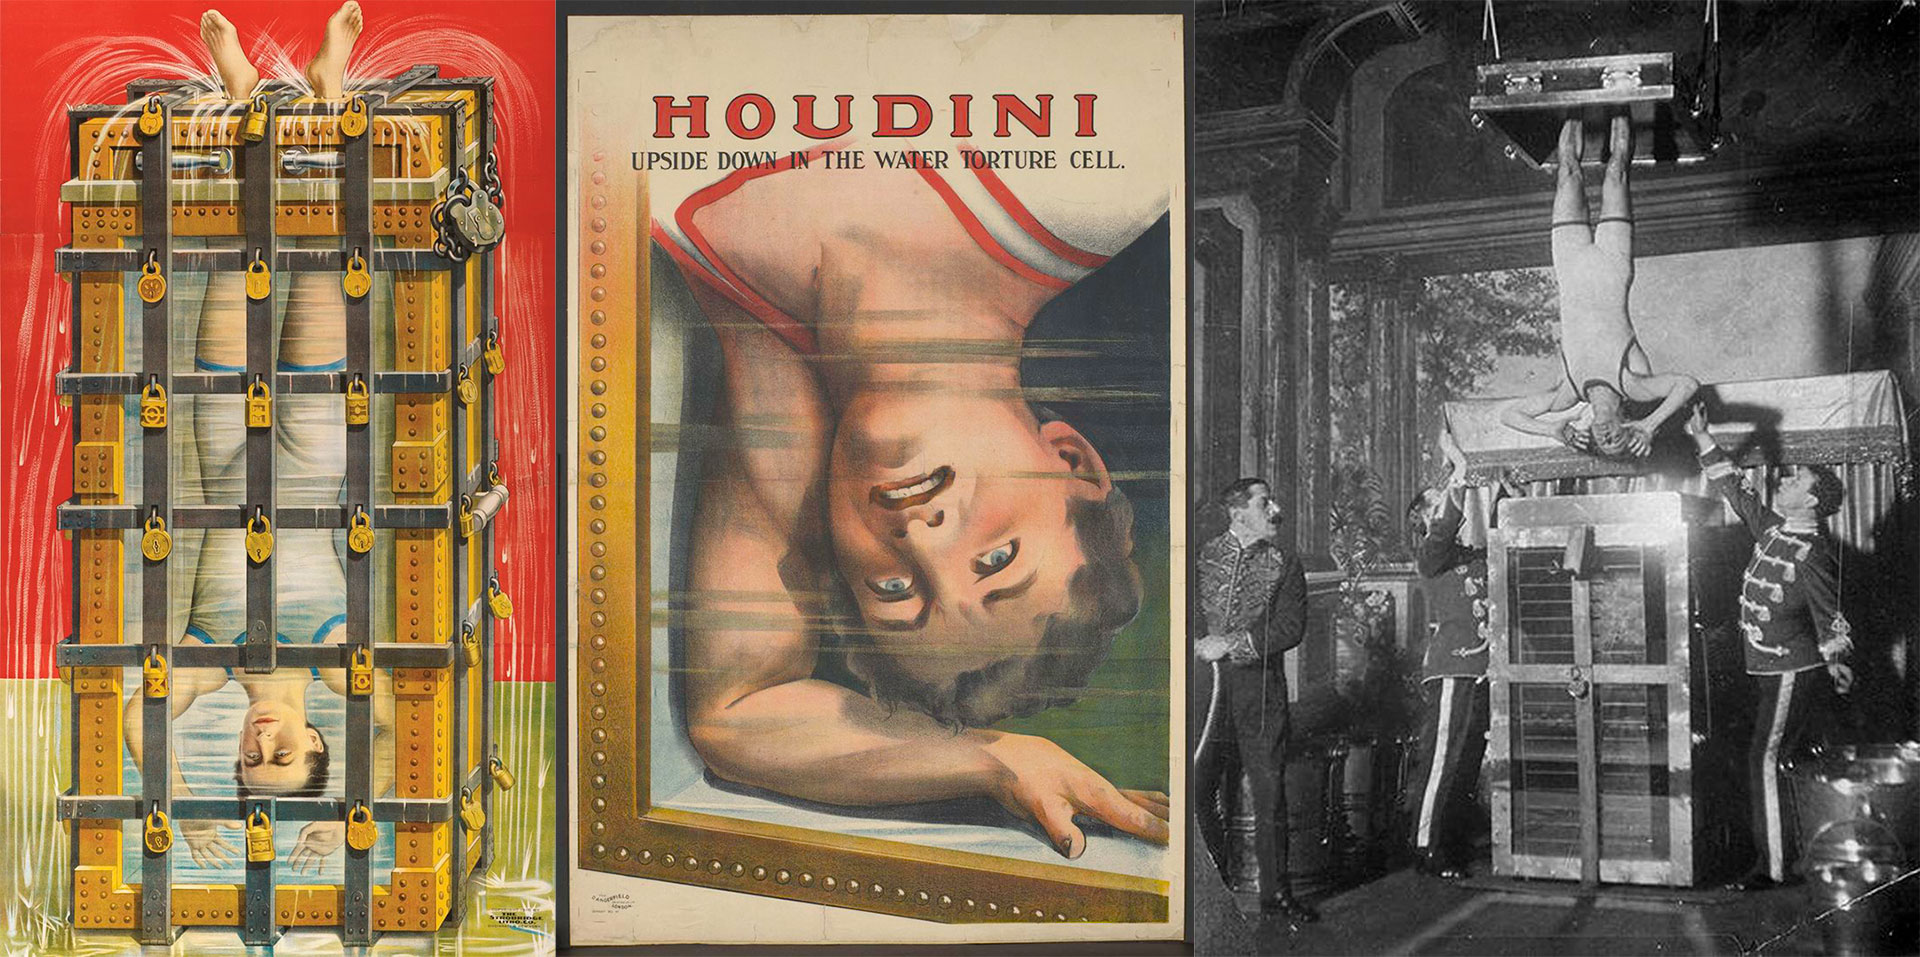 Houdini celda china